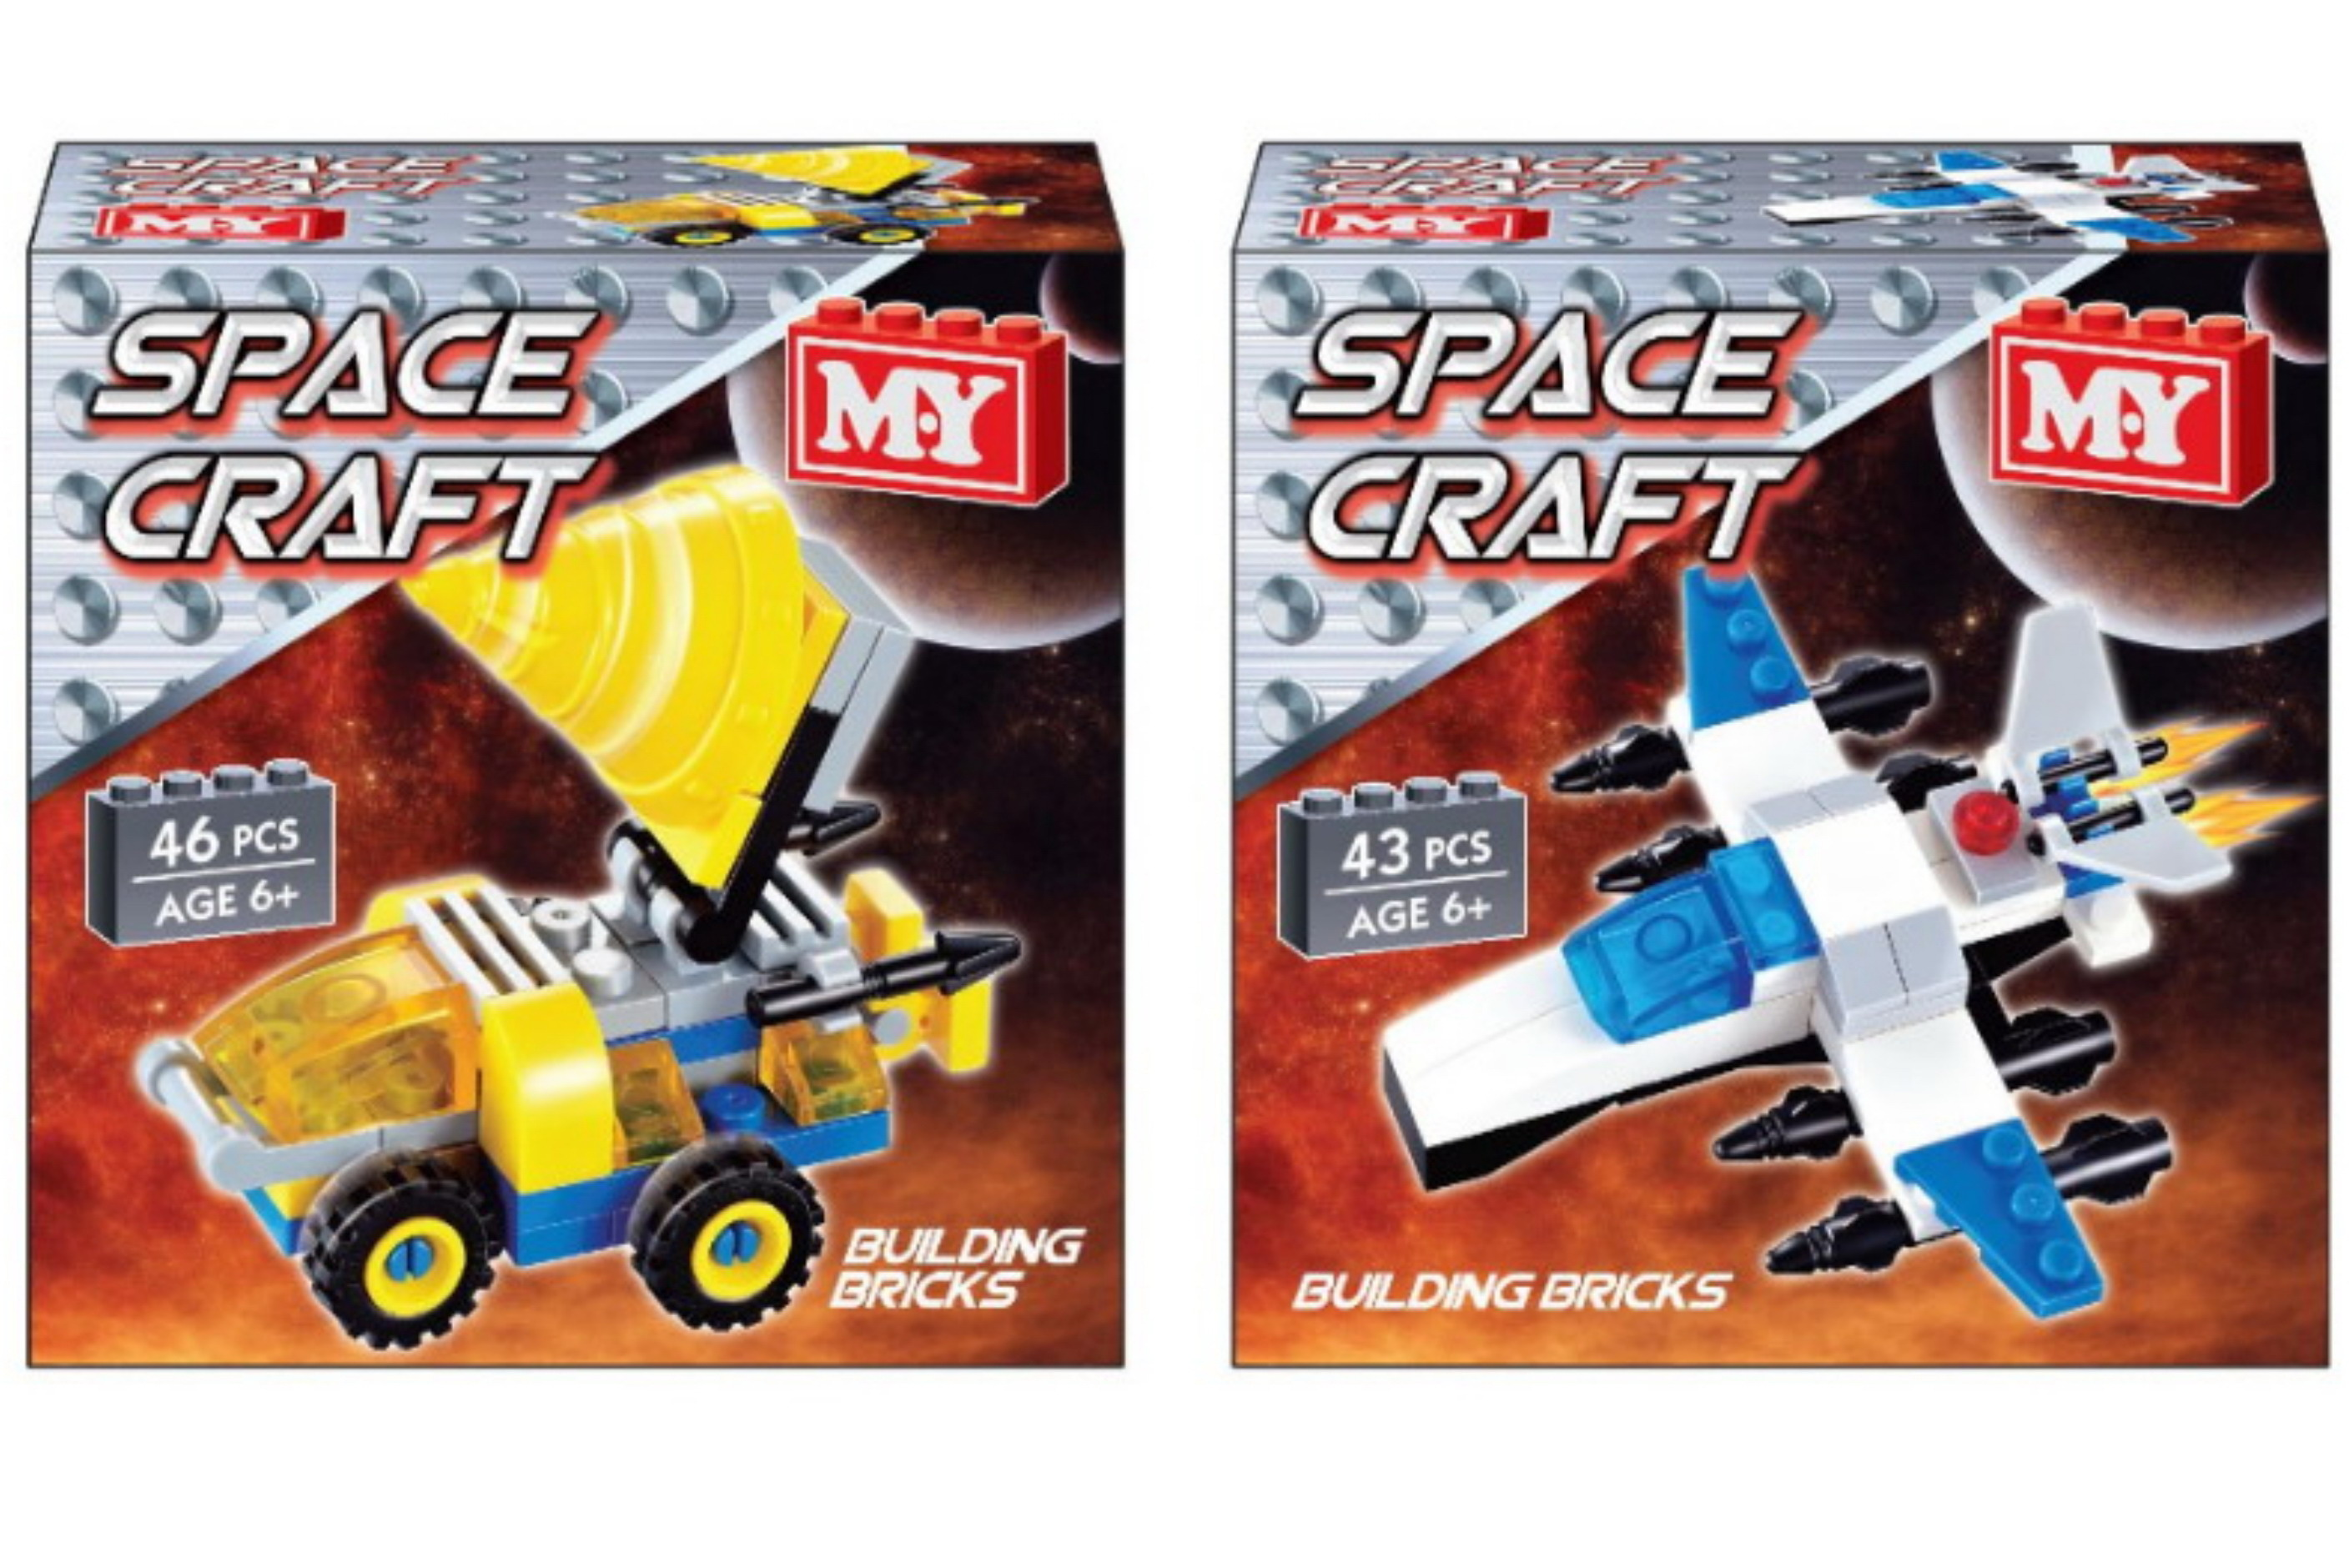 Space Craft Brick Set In Display Box